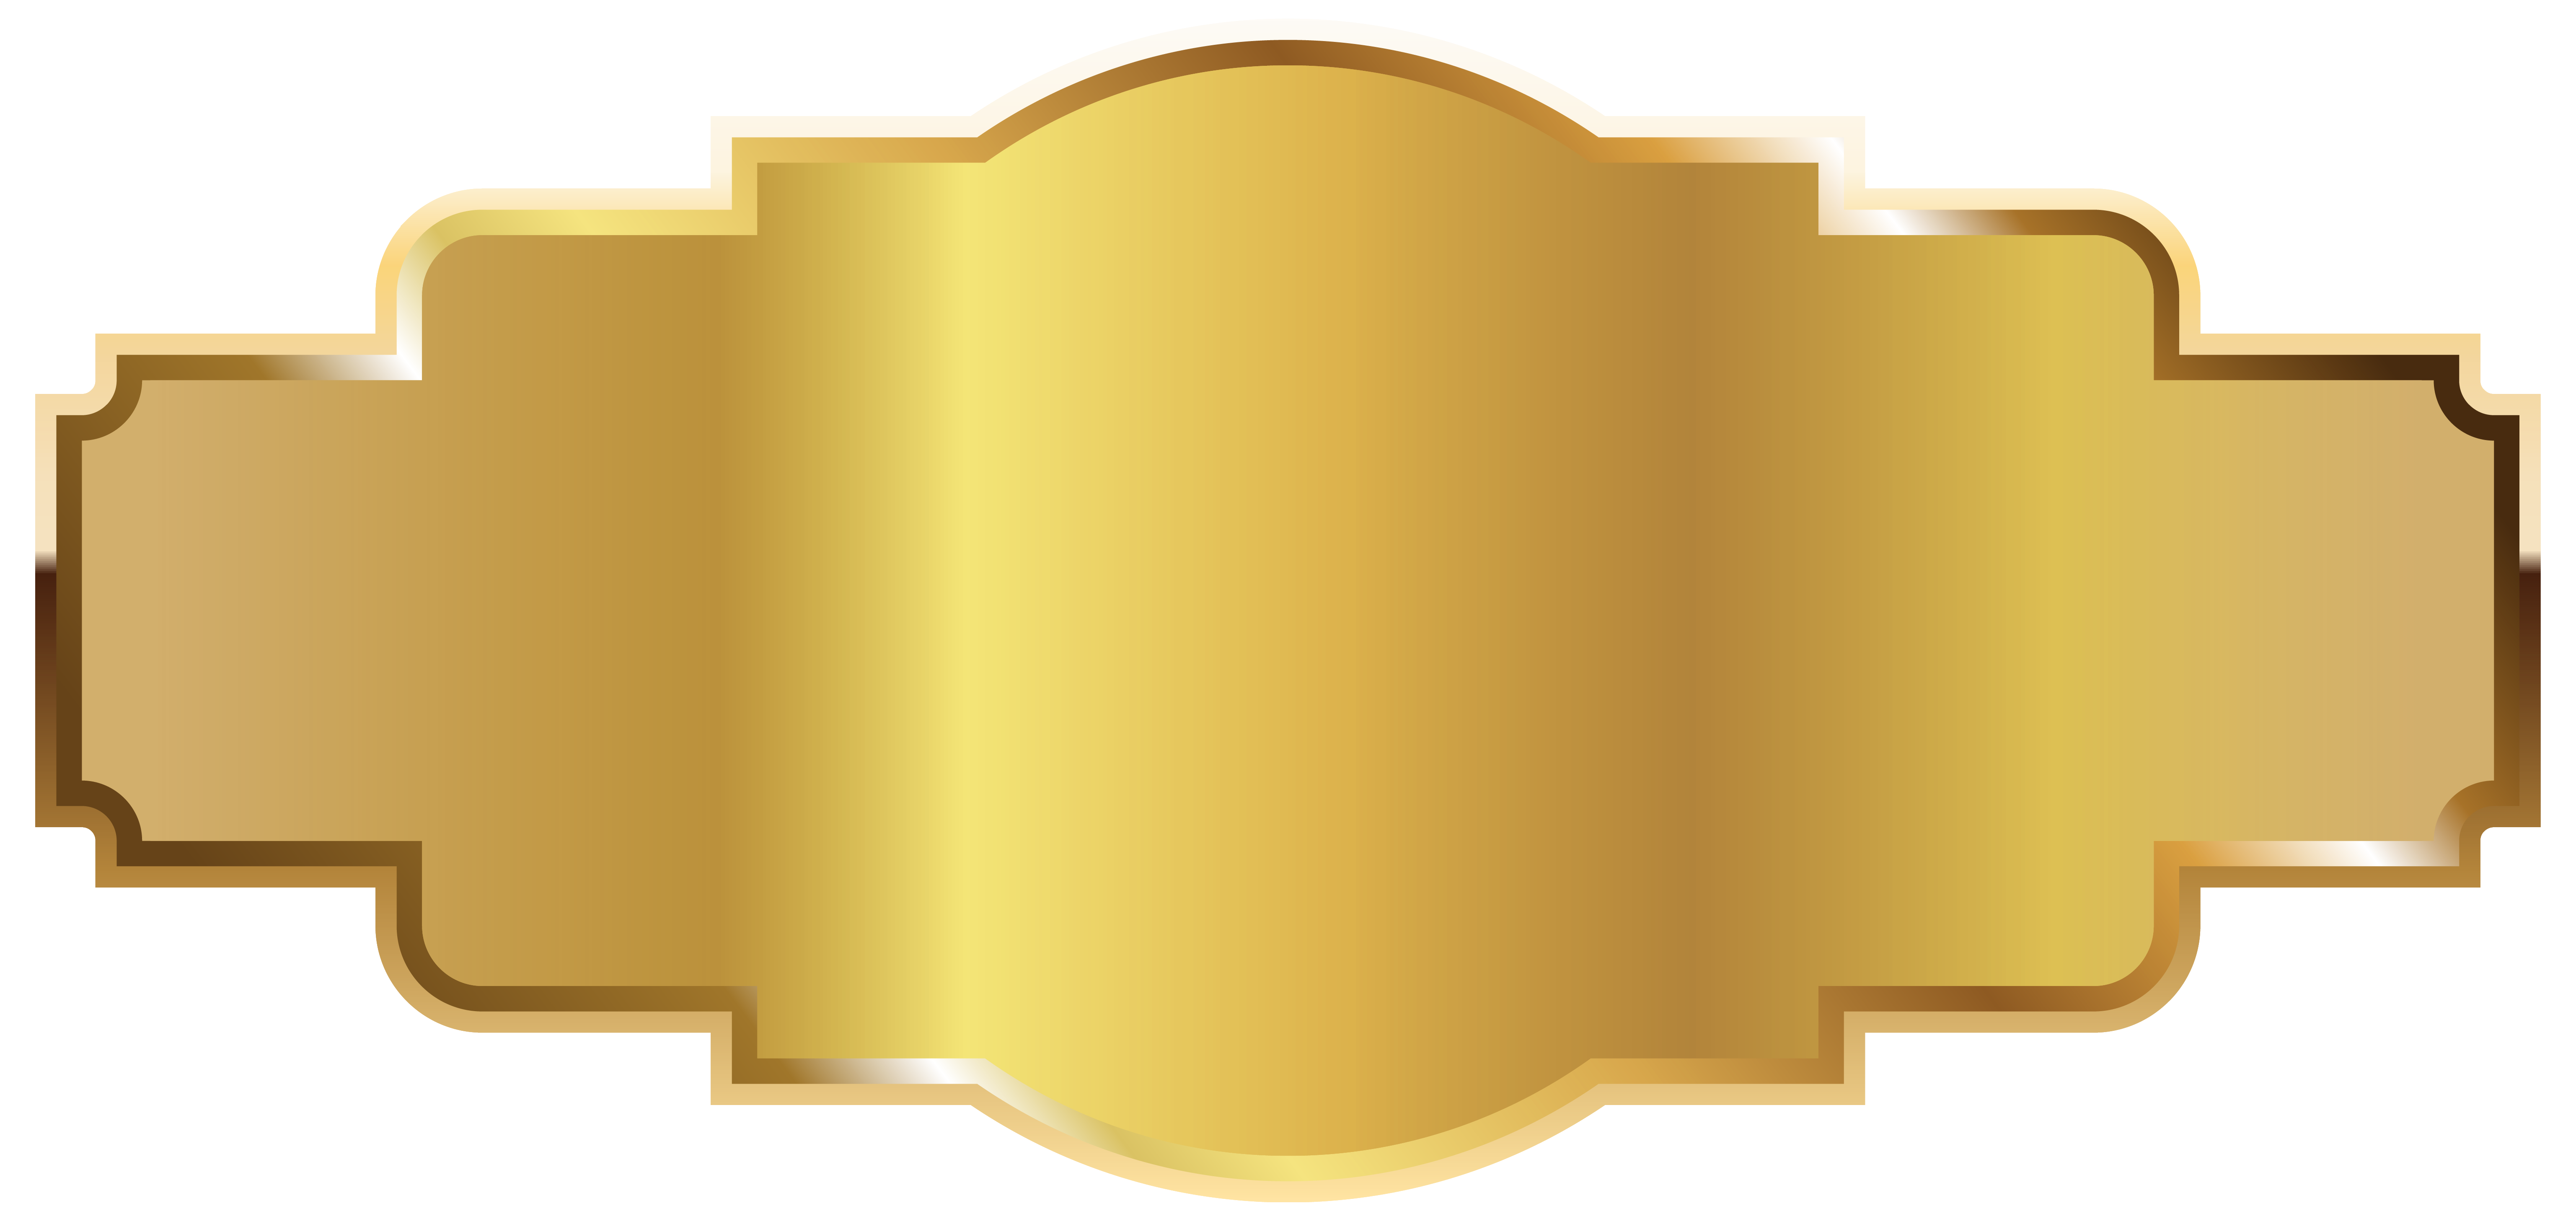 25 gold pieces clipart clipart images gallery for free.